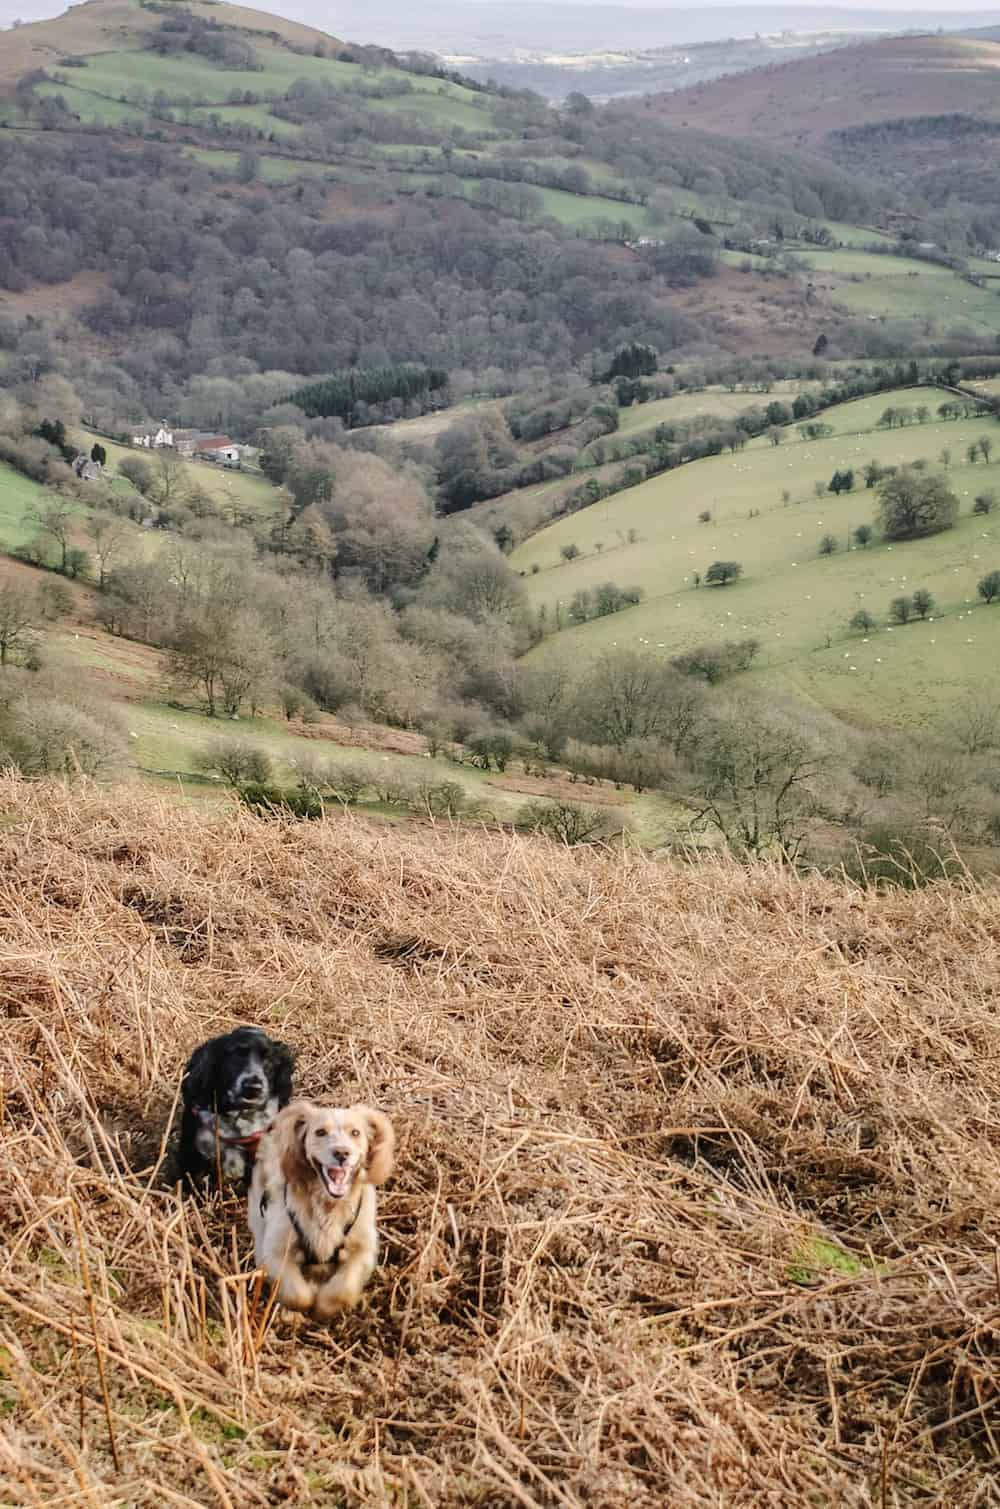 dog walking in the brecon beacons in wales near the black mountains between Abergavenny and Llanthony. Click through to see more images from our stay as well as inside shots of beautiful modern rustic Patrishow Farm where we stayed